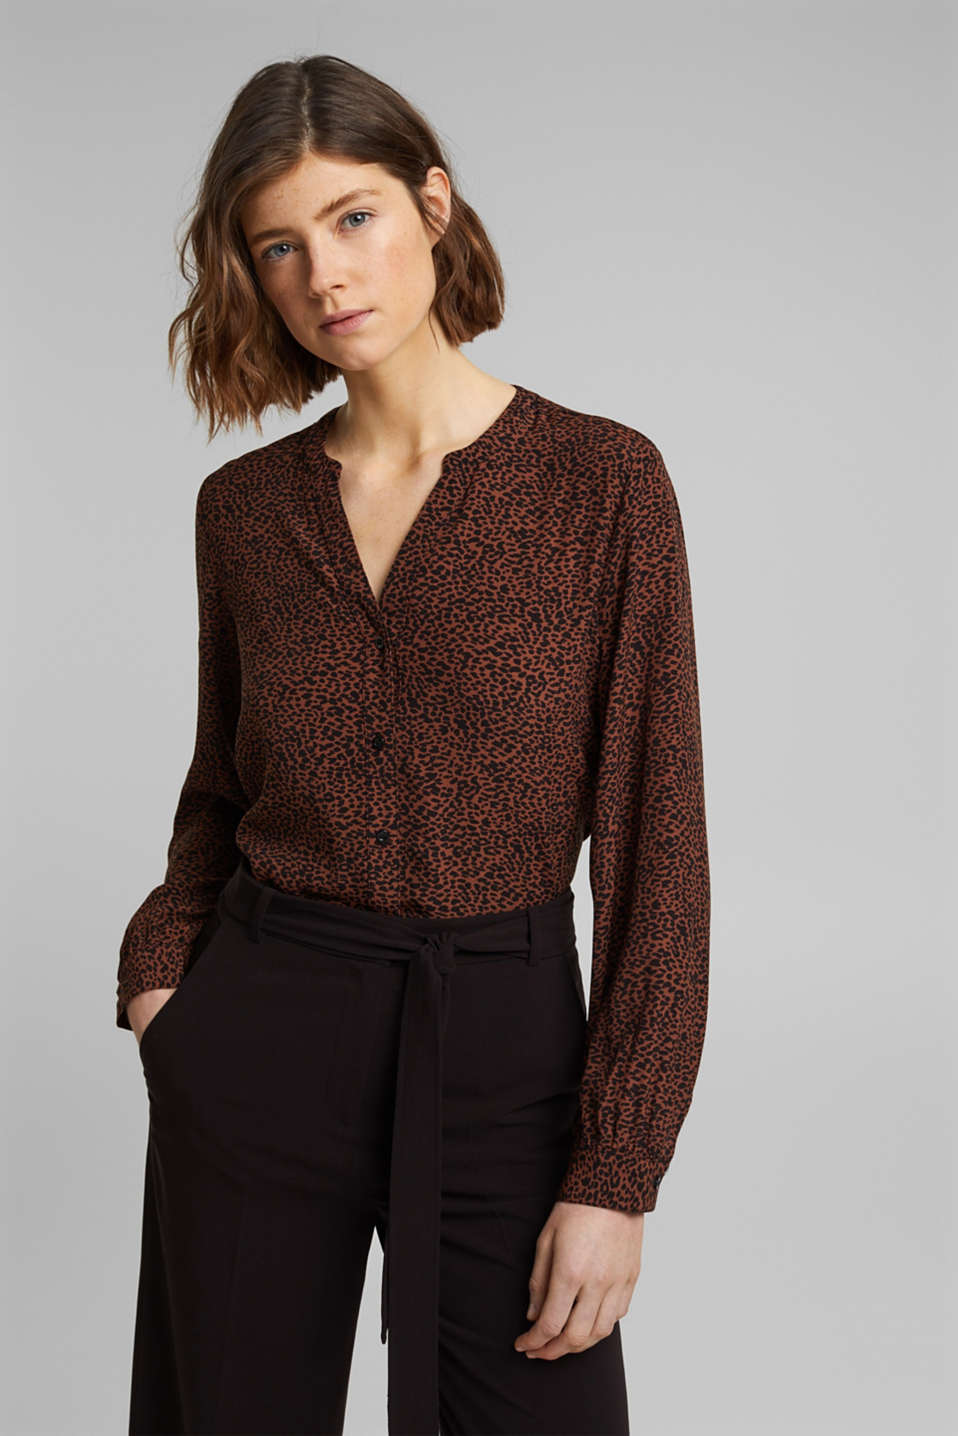 Esprit - Crêpe blouse with an animal print